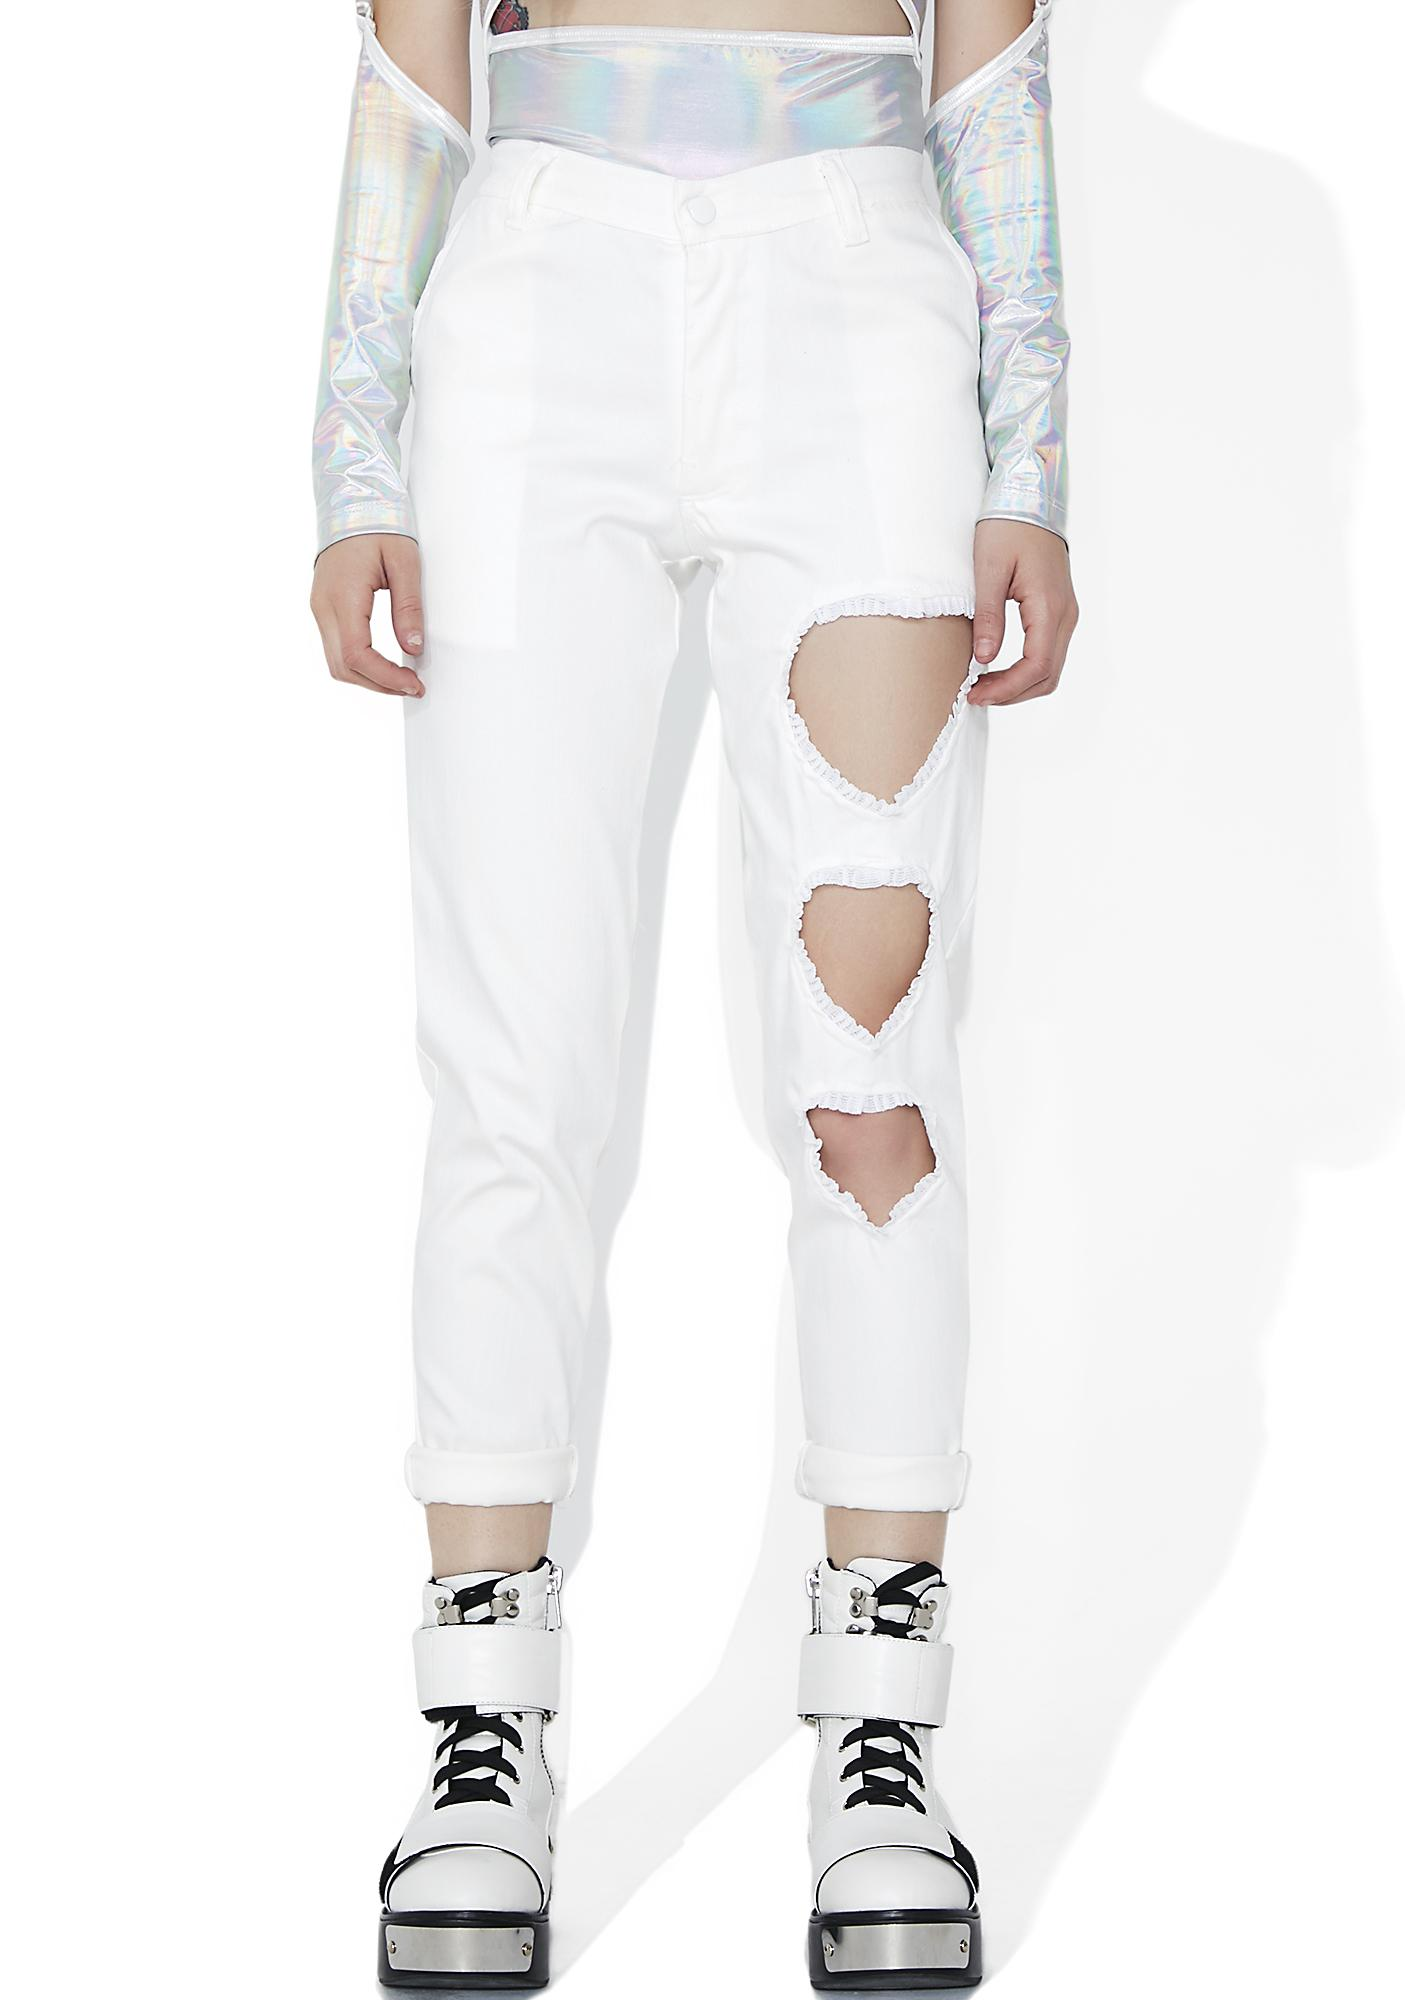 ESQAPE Liberated Heart Pants